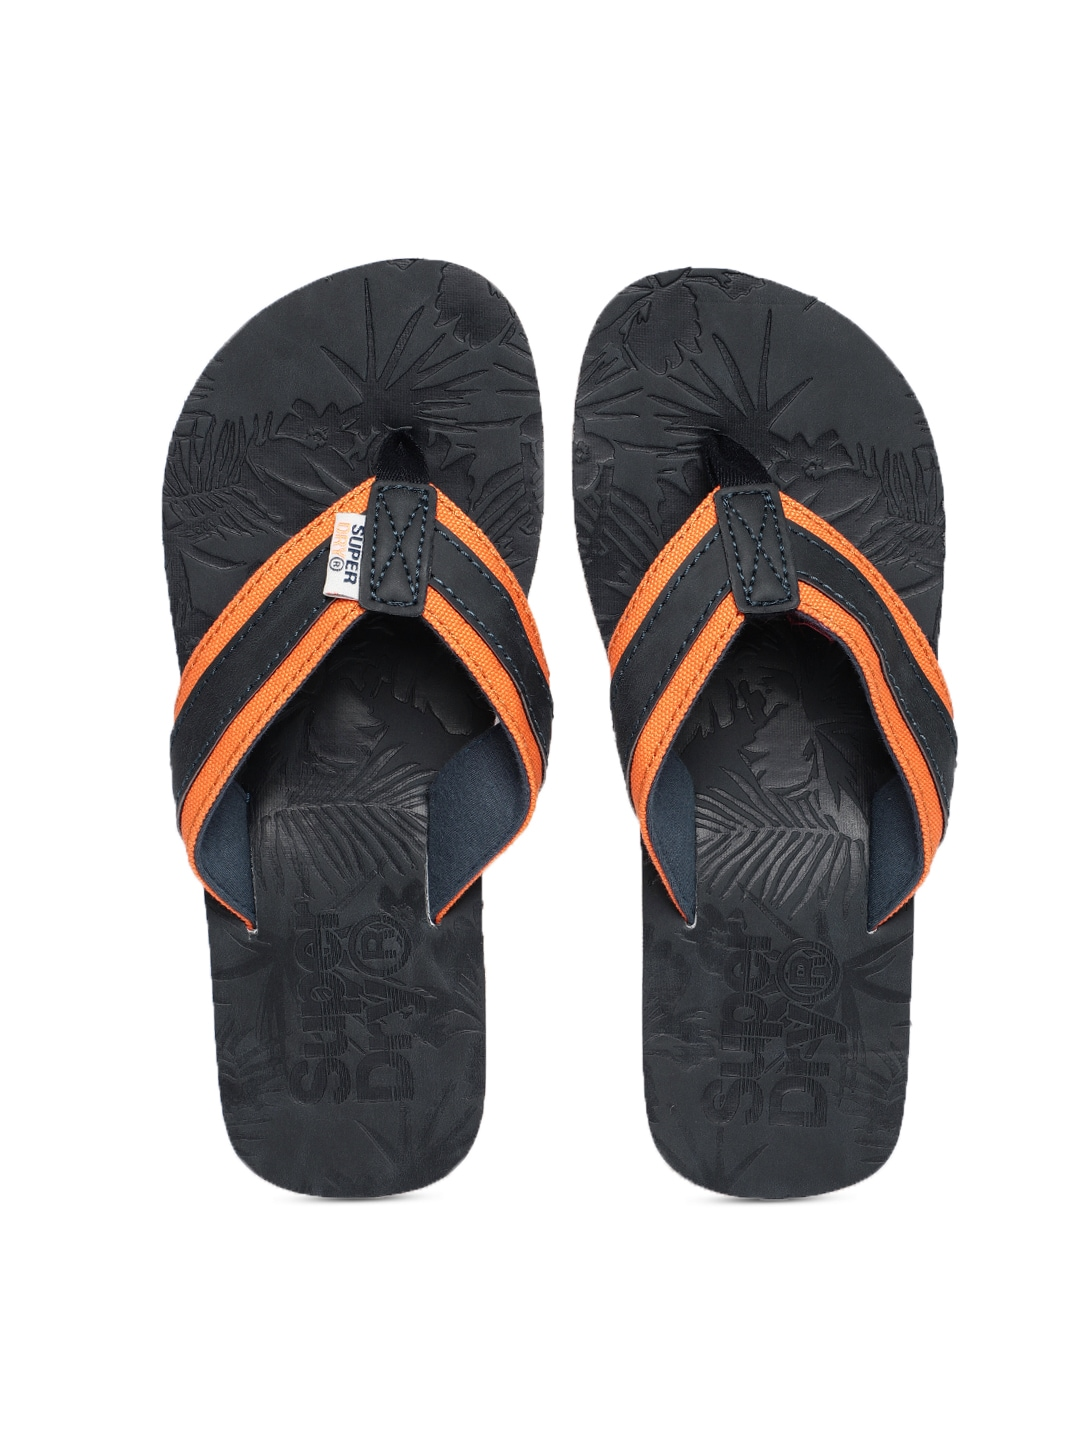 391c45ab96368 Superdry Flip Flops - Buy Superdry Flip Flops online in India